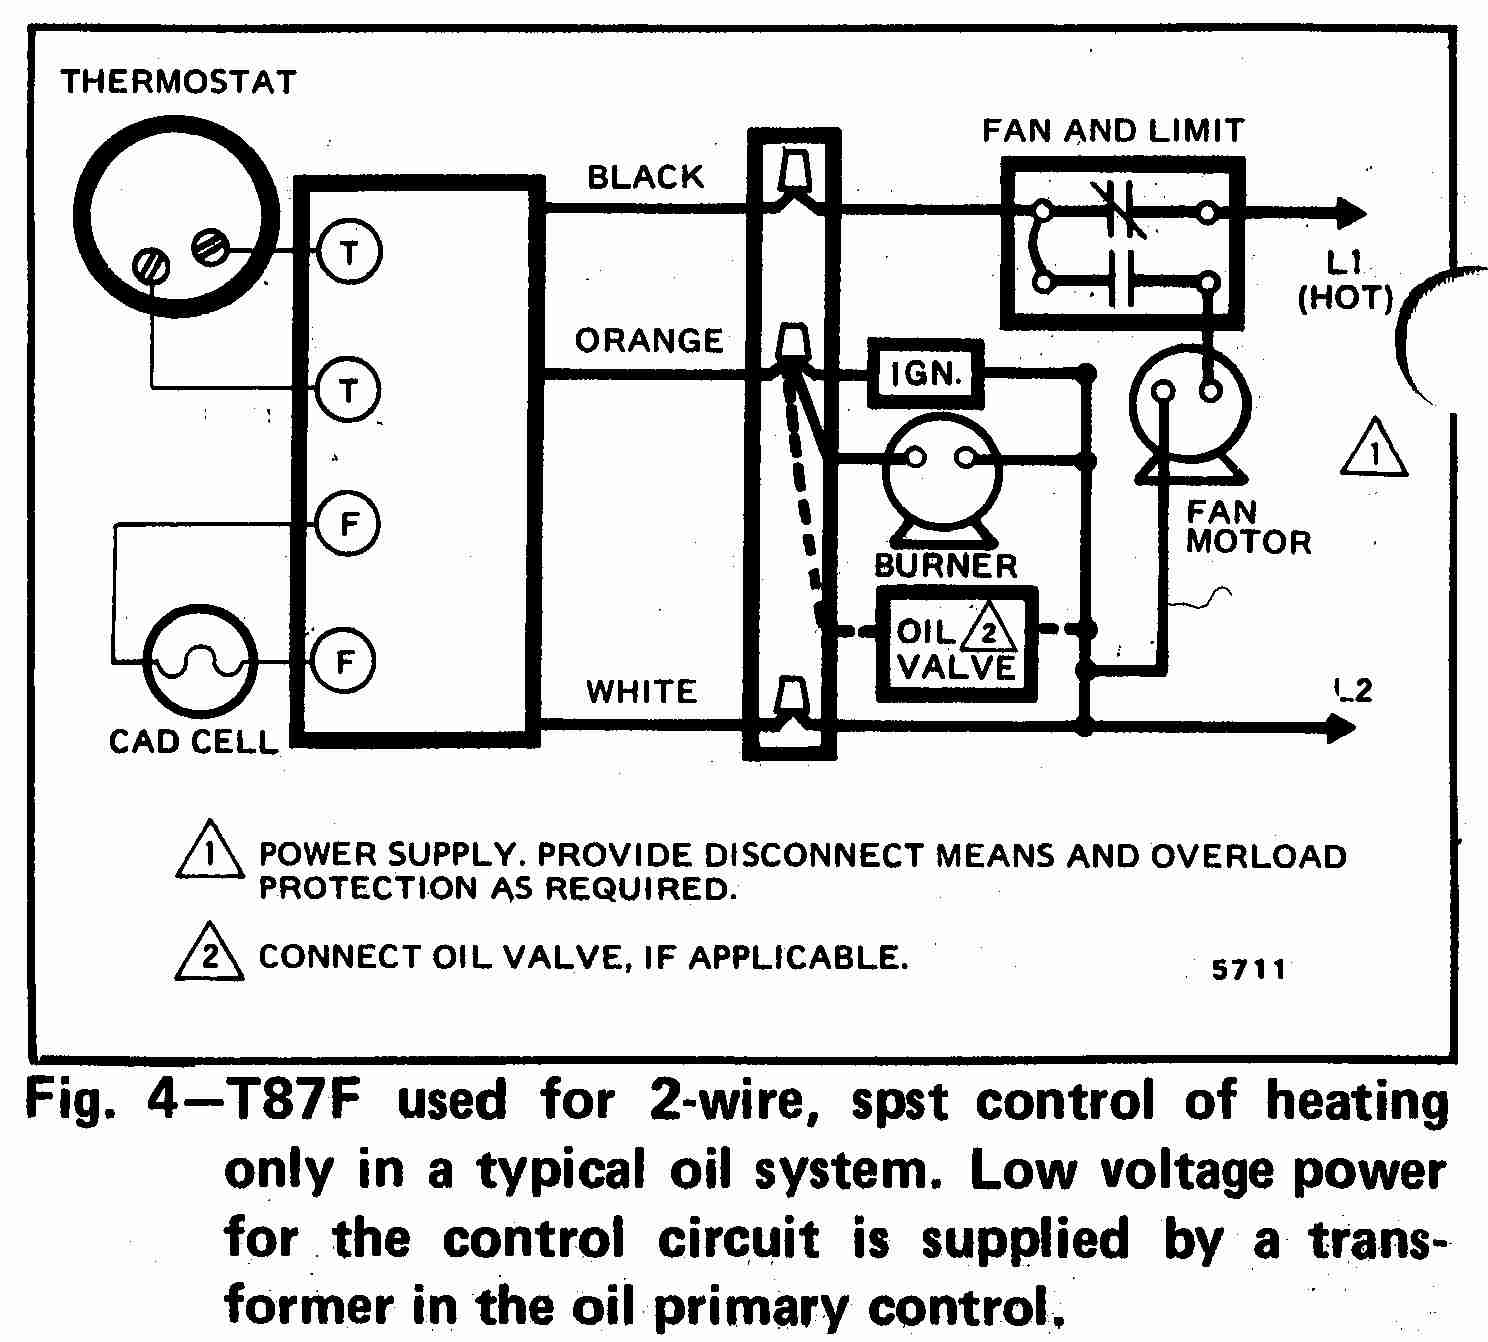 TT_T87F_0002_2W_DJF hvac control wiring diagram hvac compressor wiring diagram \u2022 free honeywell pressure switch wiring diagram at metegol.co